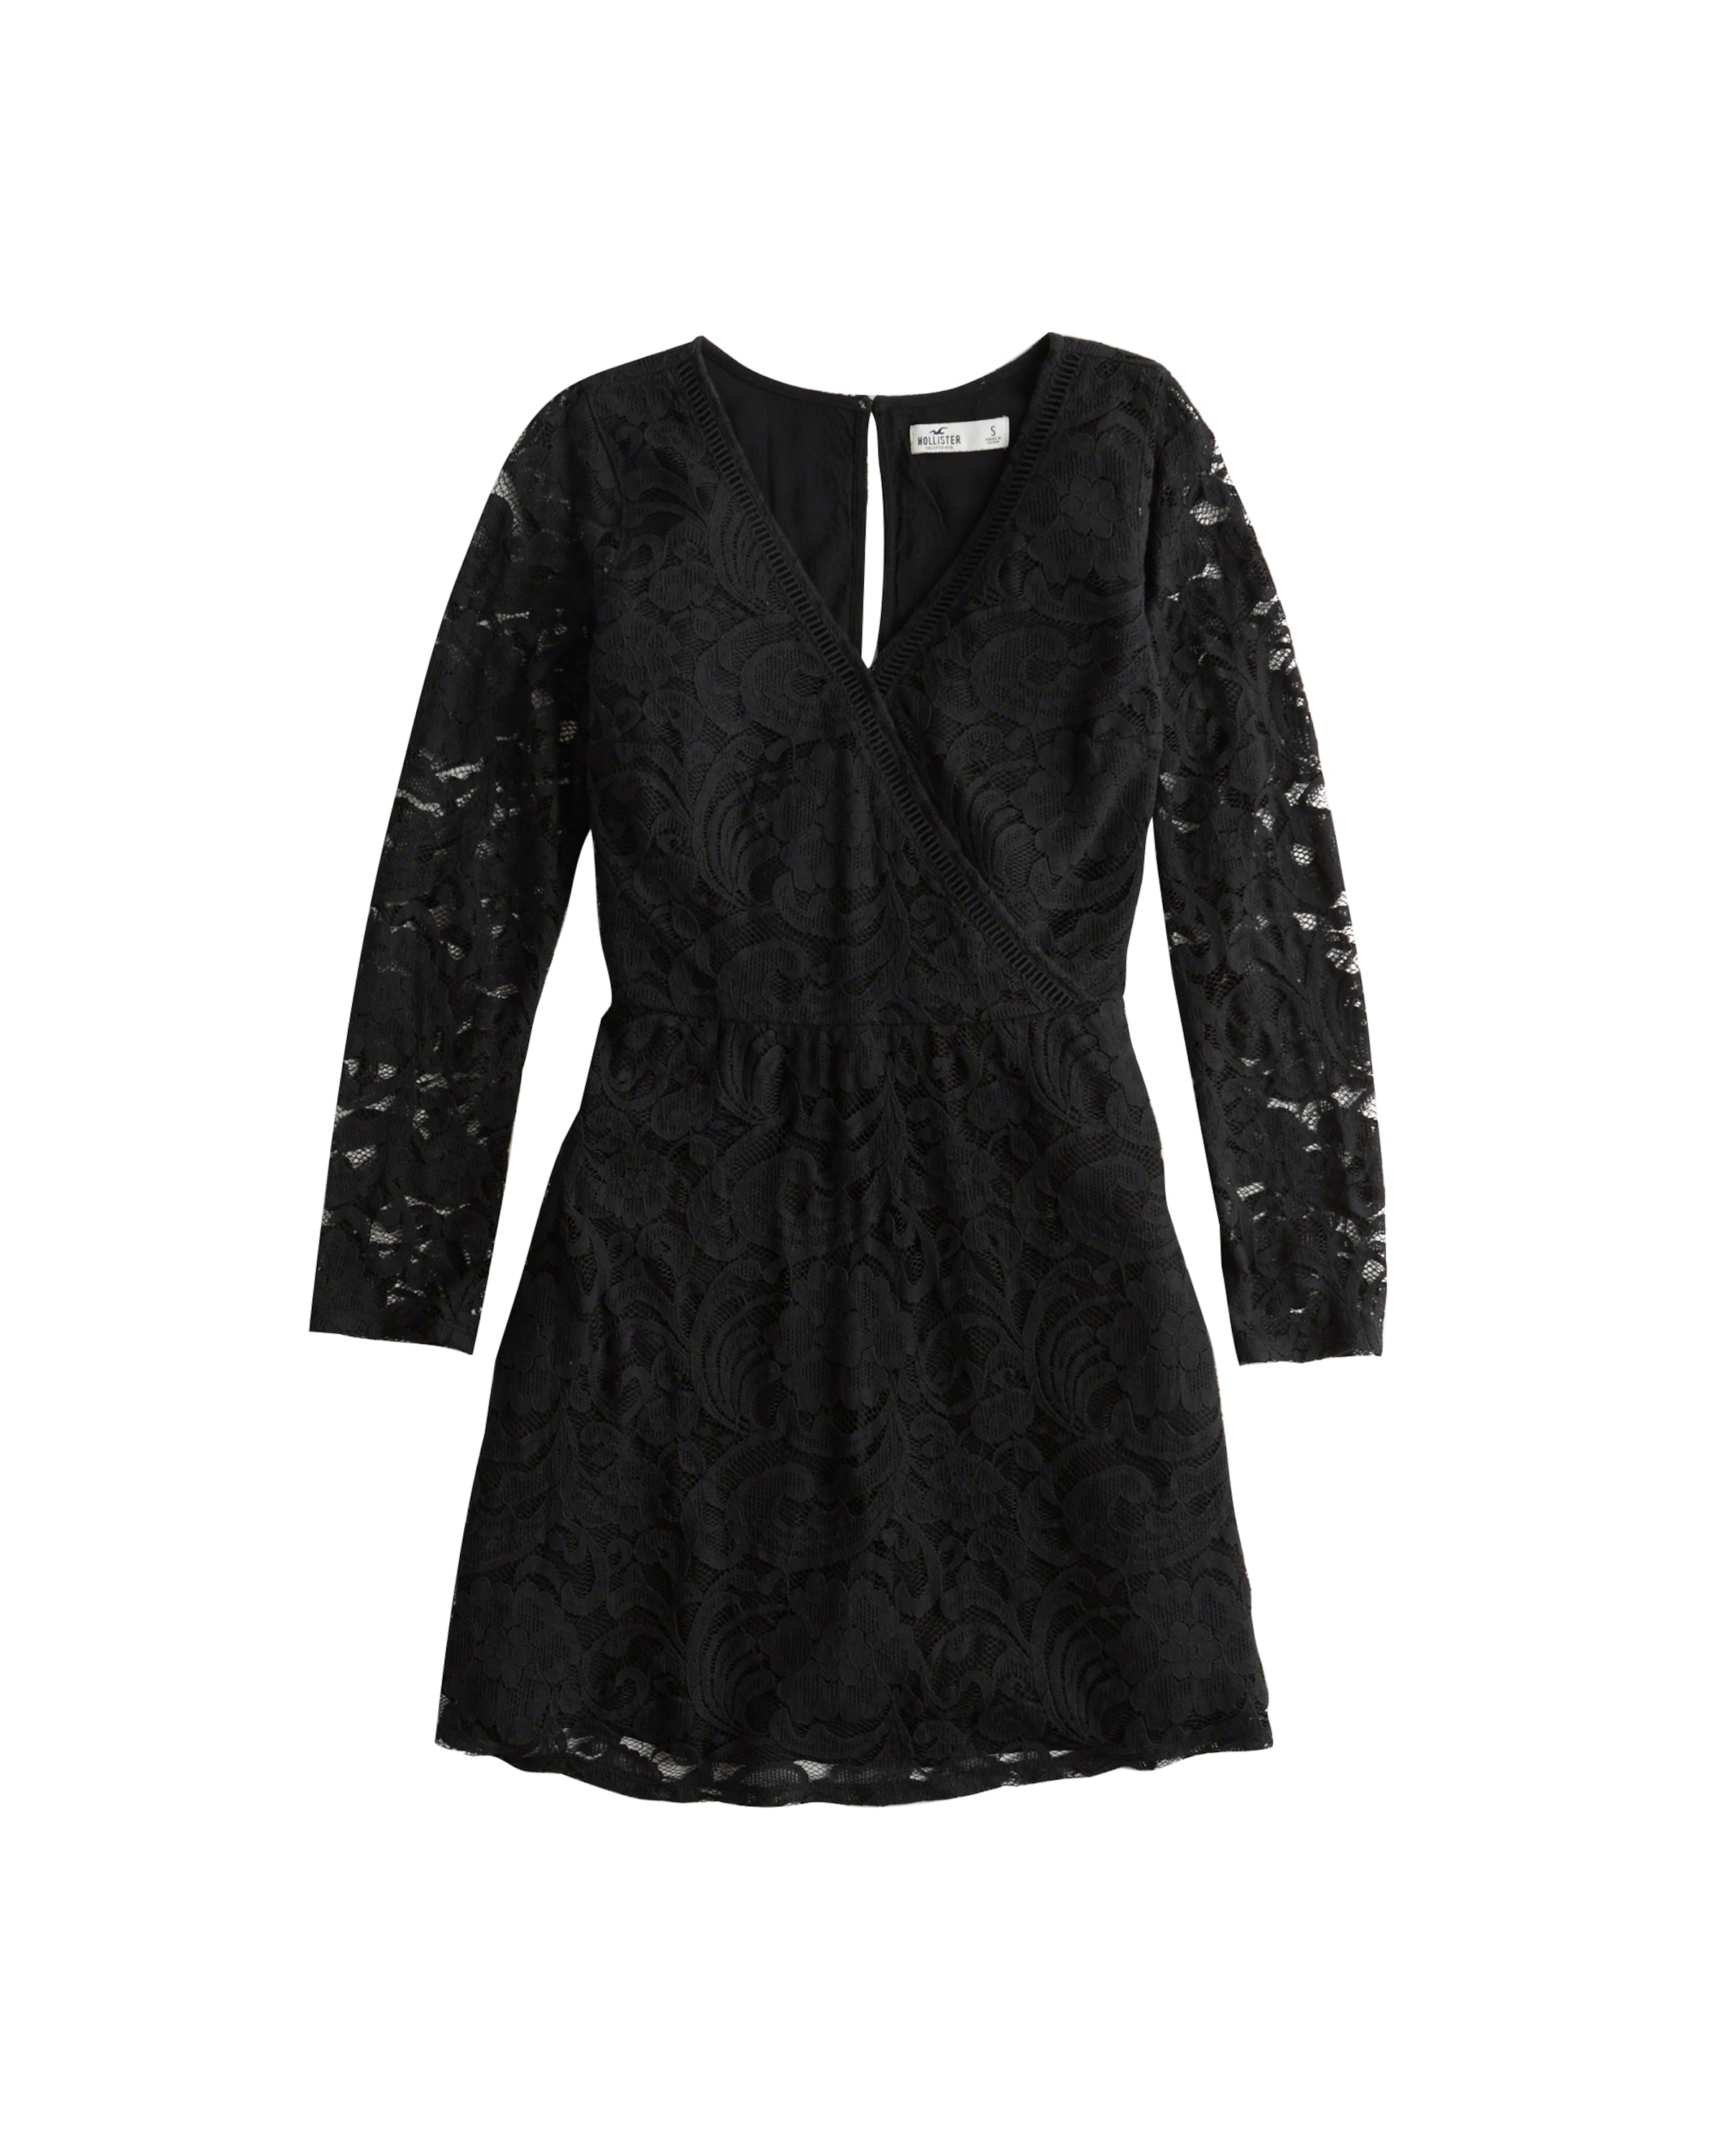 Noir Robe nb 'bts18 Hollister En Lace Dress' Yyf76bg